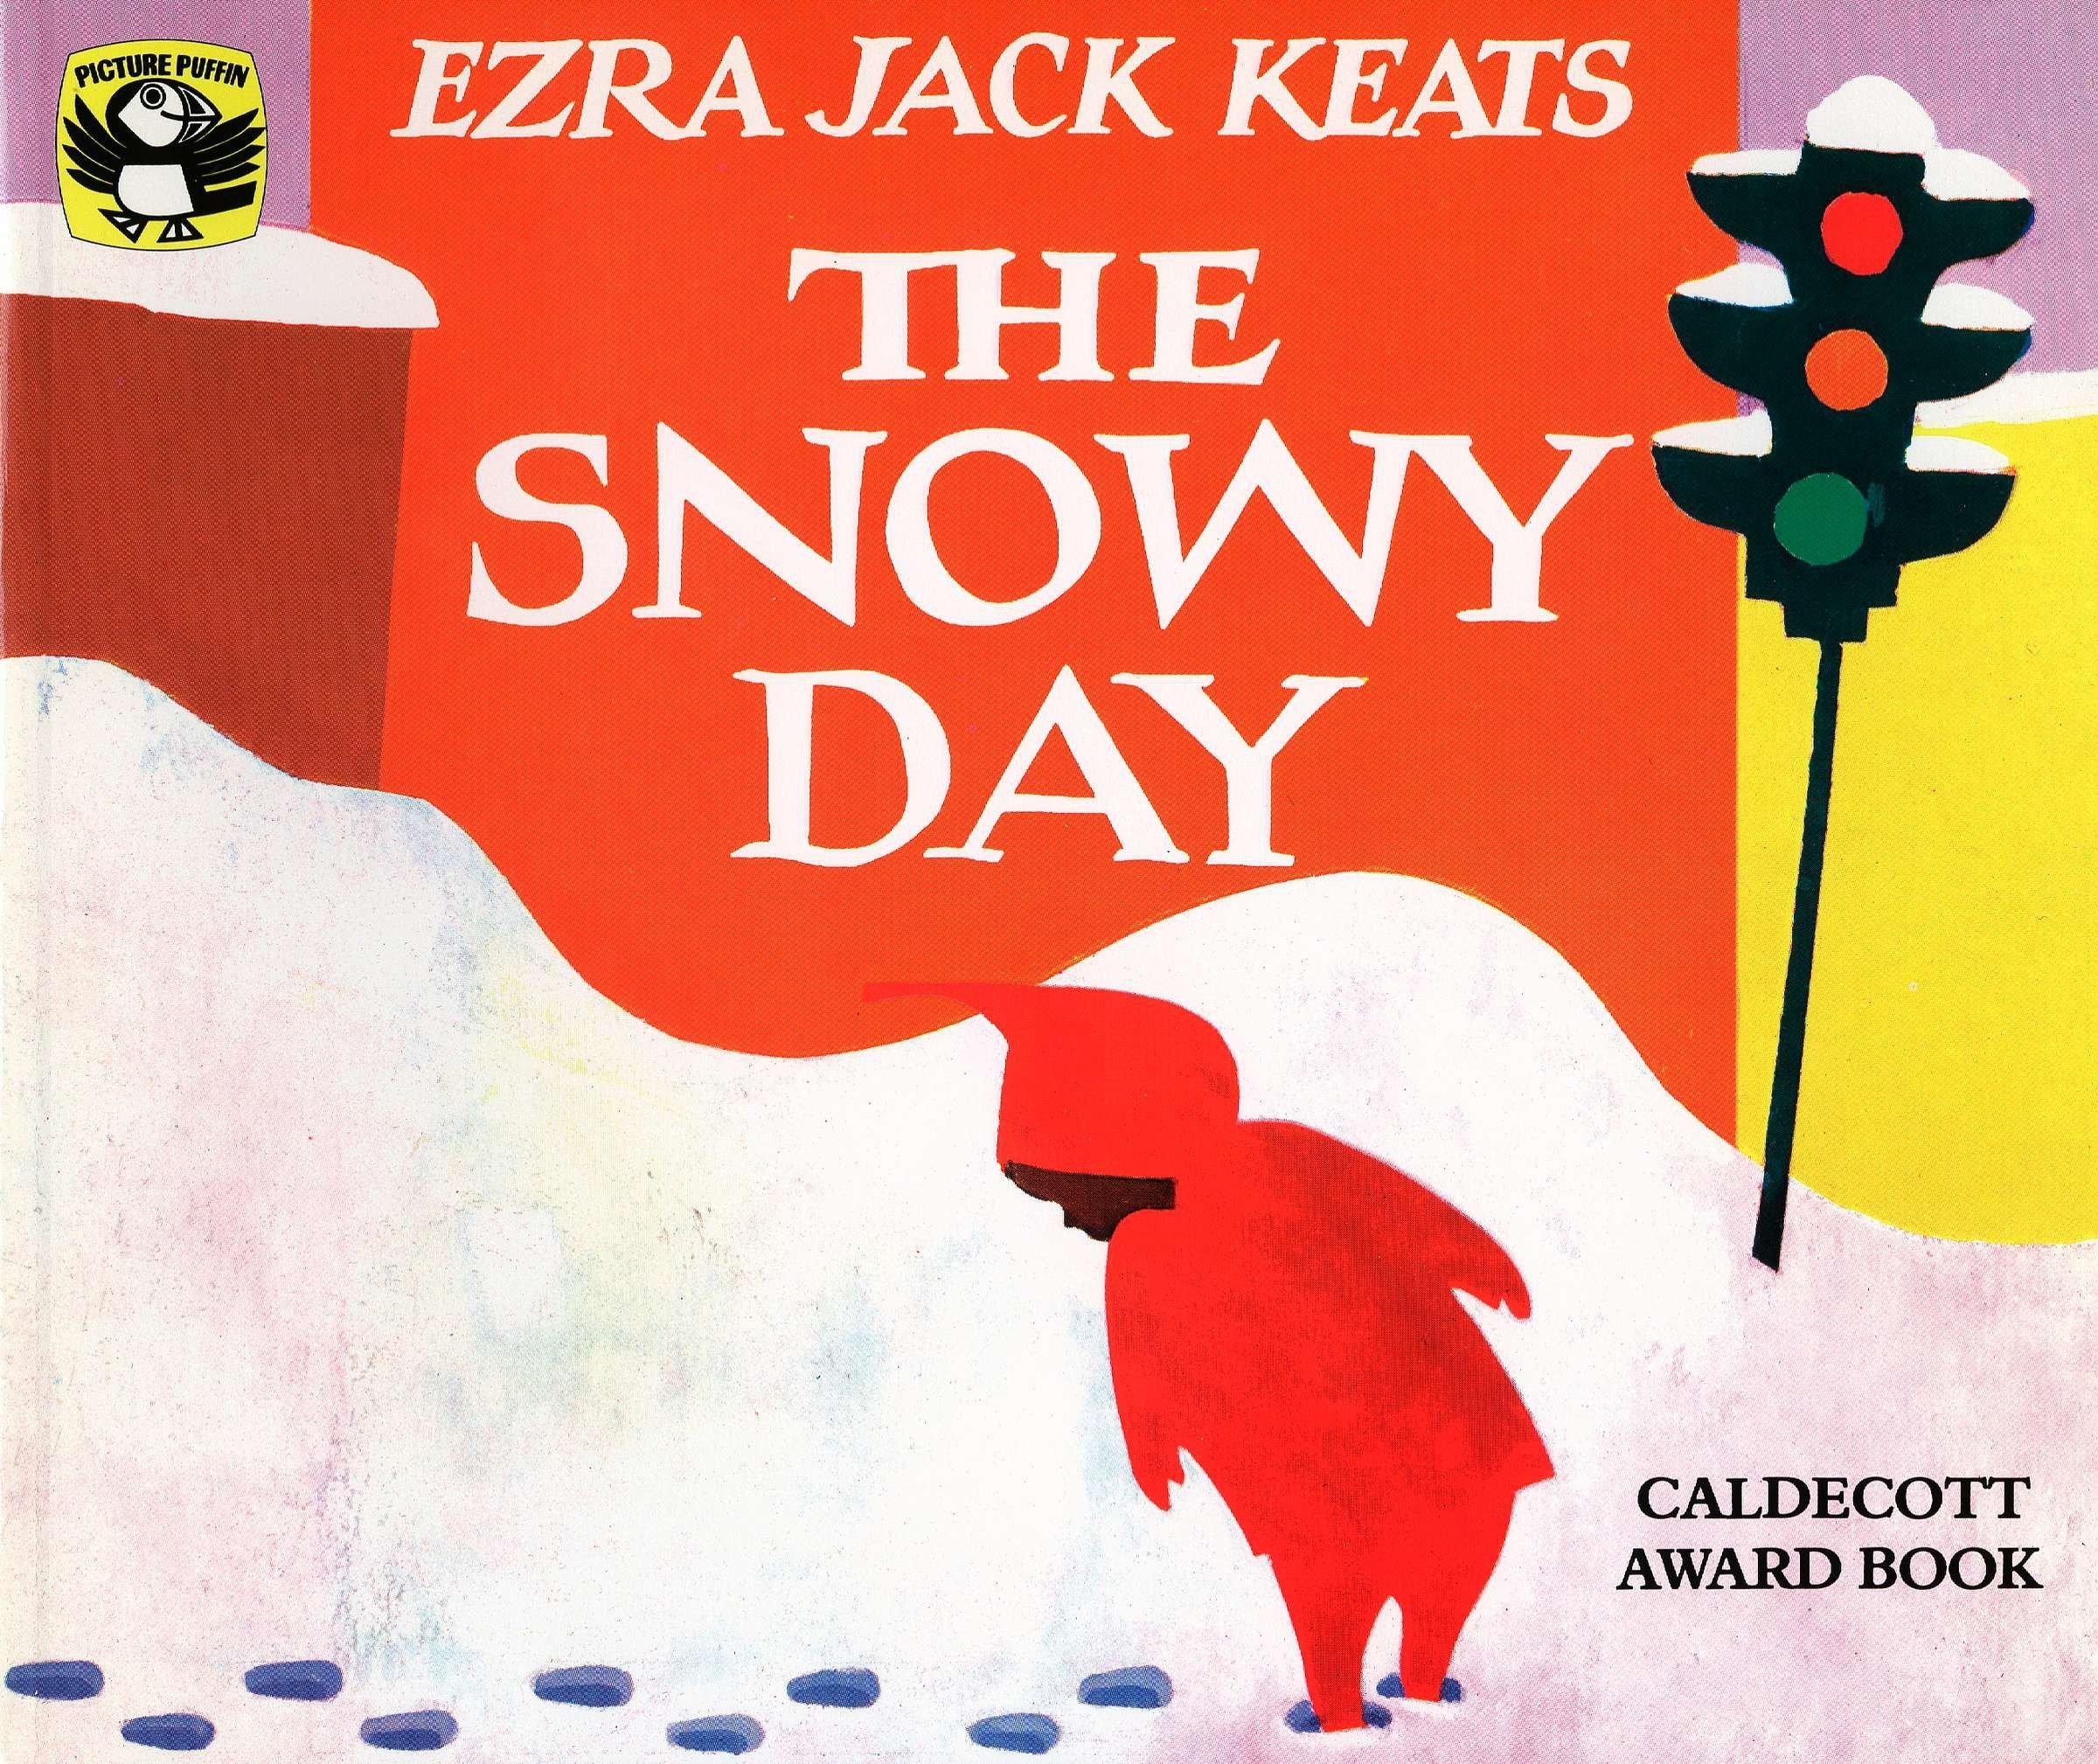 The Best Picture Books for a Snowy Day - The Snowy Day.jpg